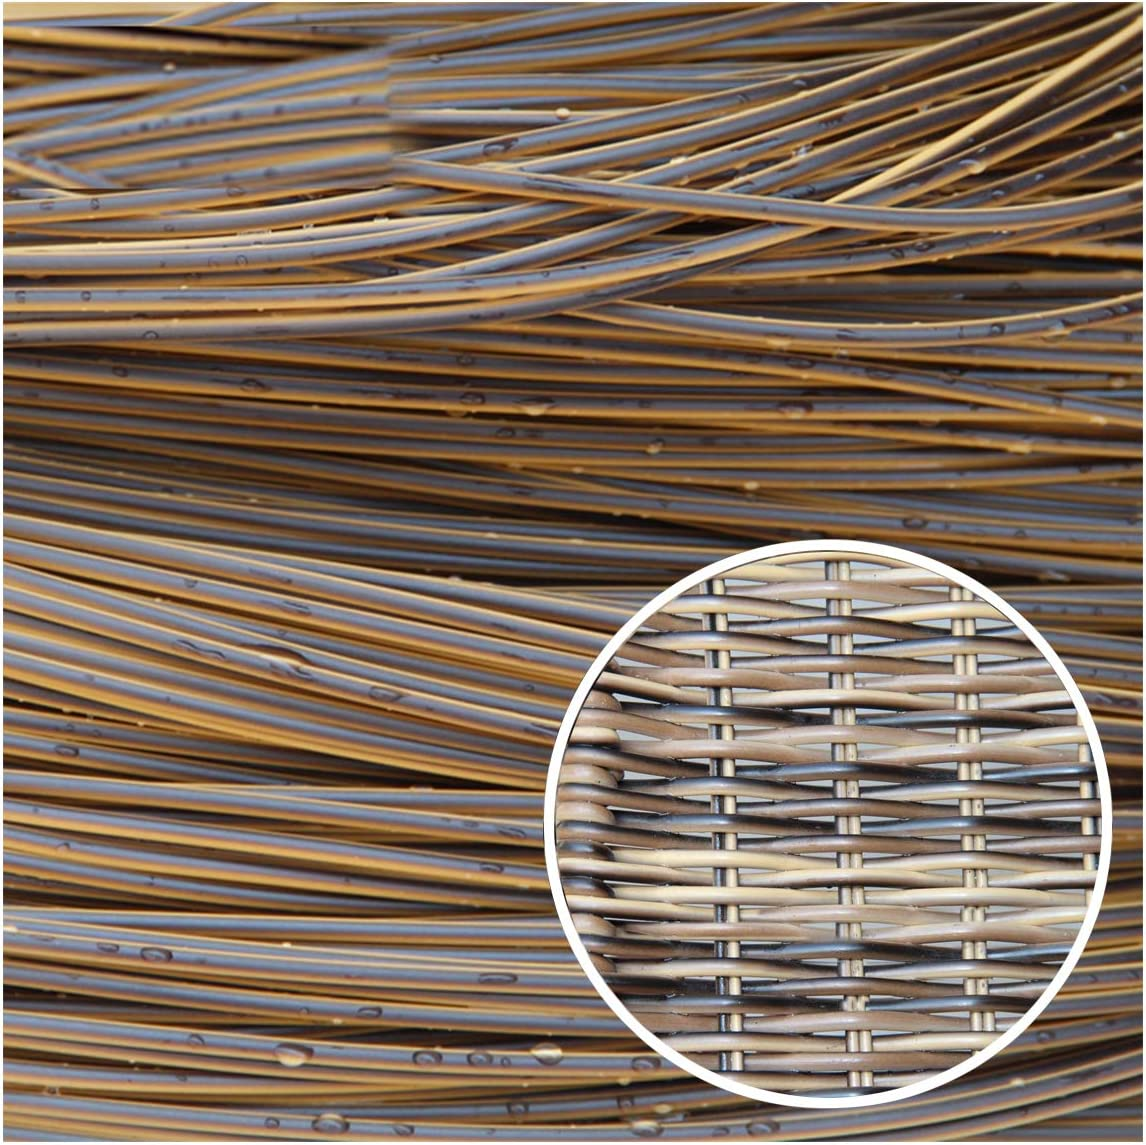 Wuweihome 32.8 ft(10m) Synthetic Circle Rattan Polyethylene Plastic Round Rattan Woven for Handmade Repair Fix Wicker Chair Knit, Rattan Table Wicker Furniture, Basket Weaving, DIY Crafts, Tricolor